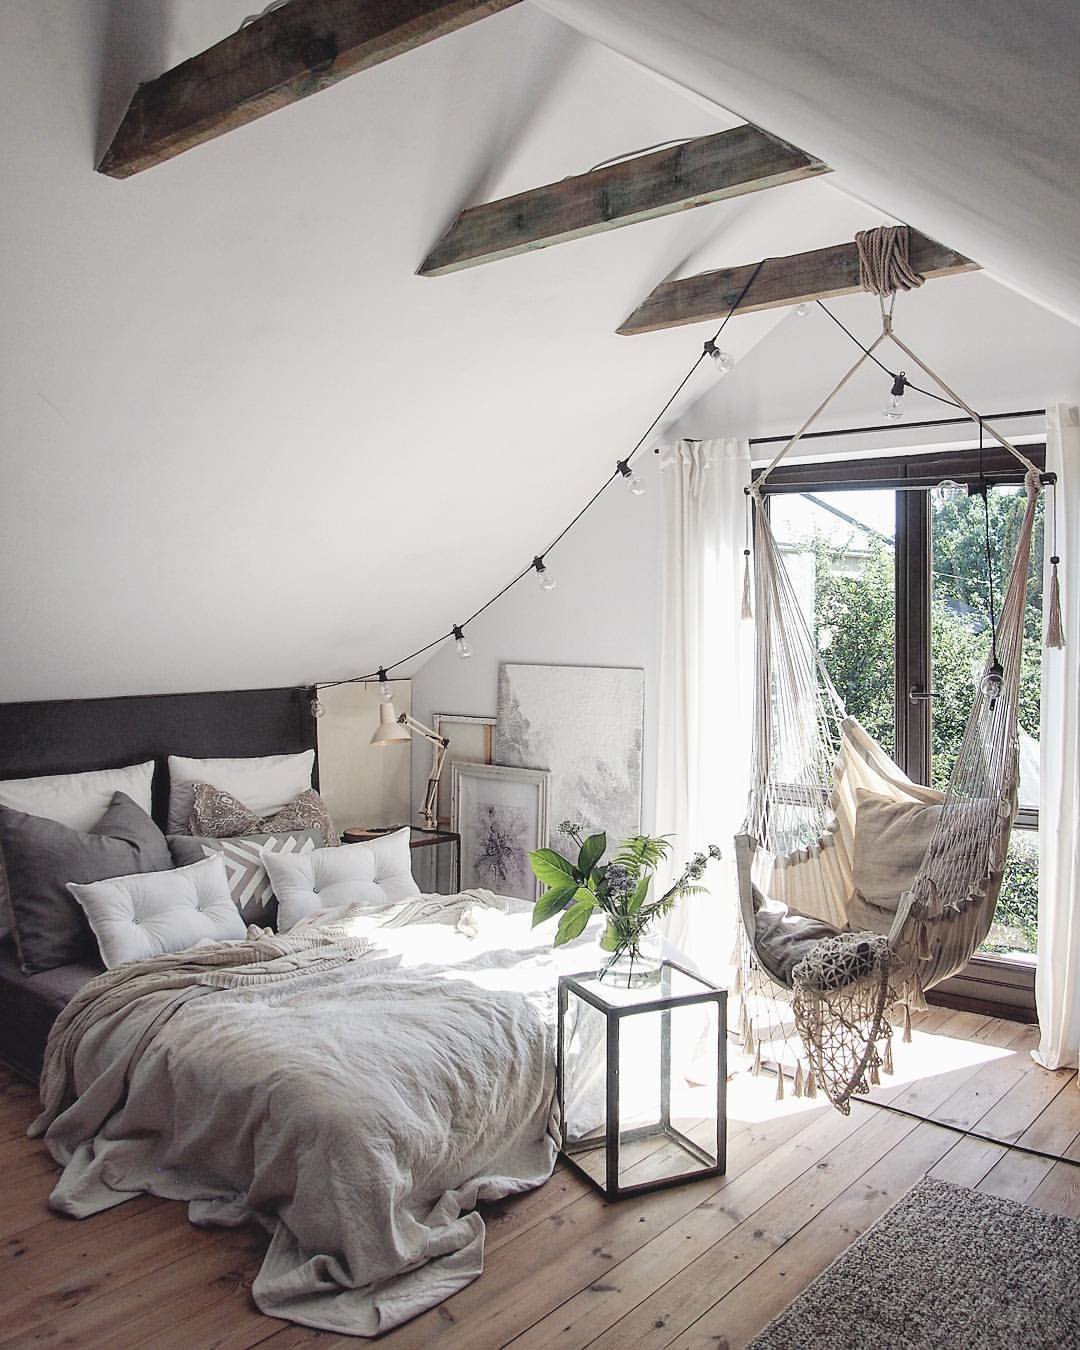 10 Cozy And Dreamy Bedroom With Galaxy Themes: 10 Idées Pour Un Espace Cocooning Chambre Gris Beige